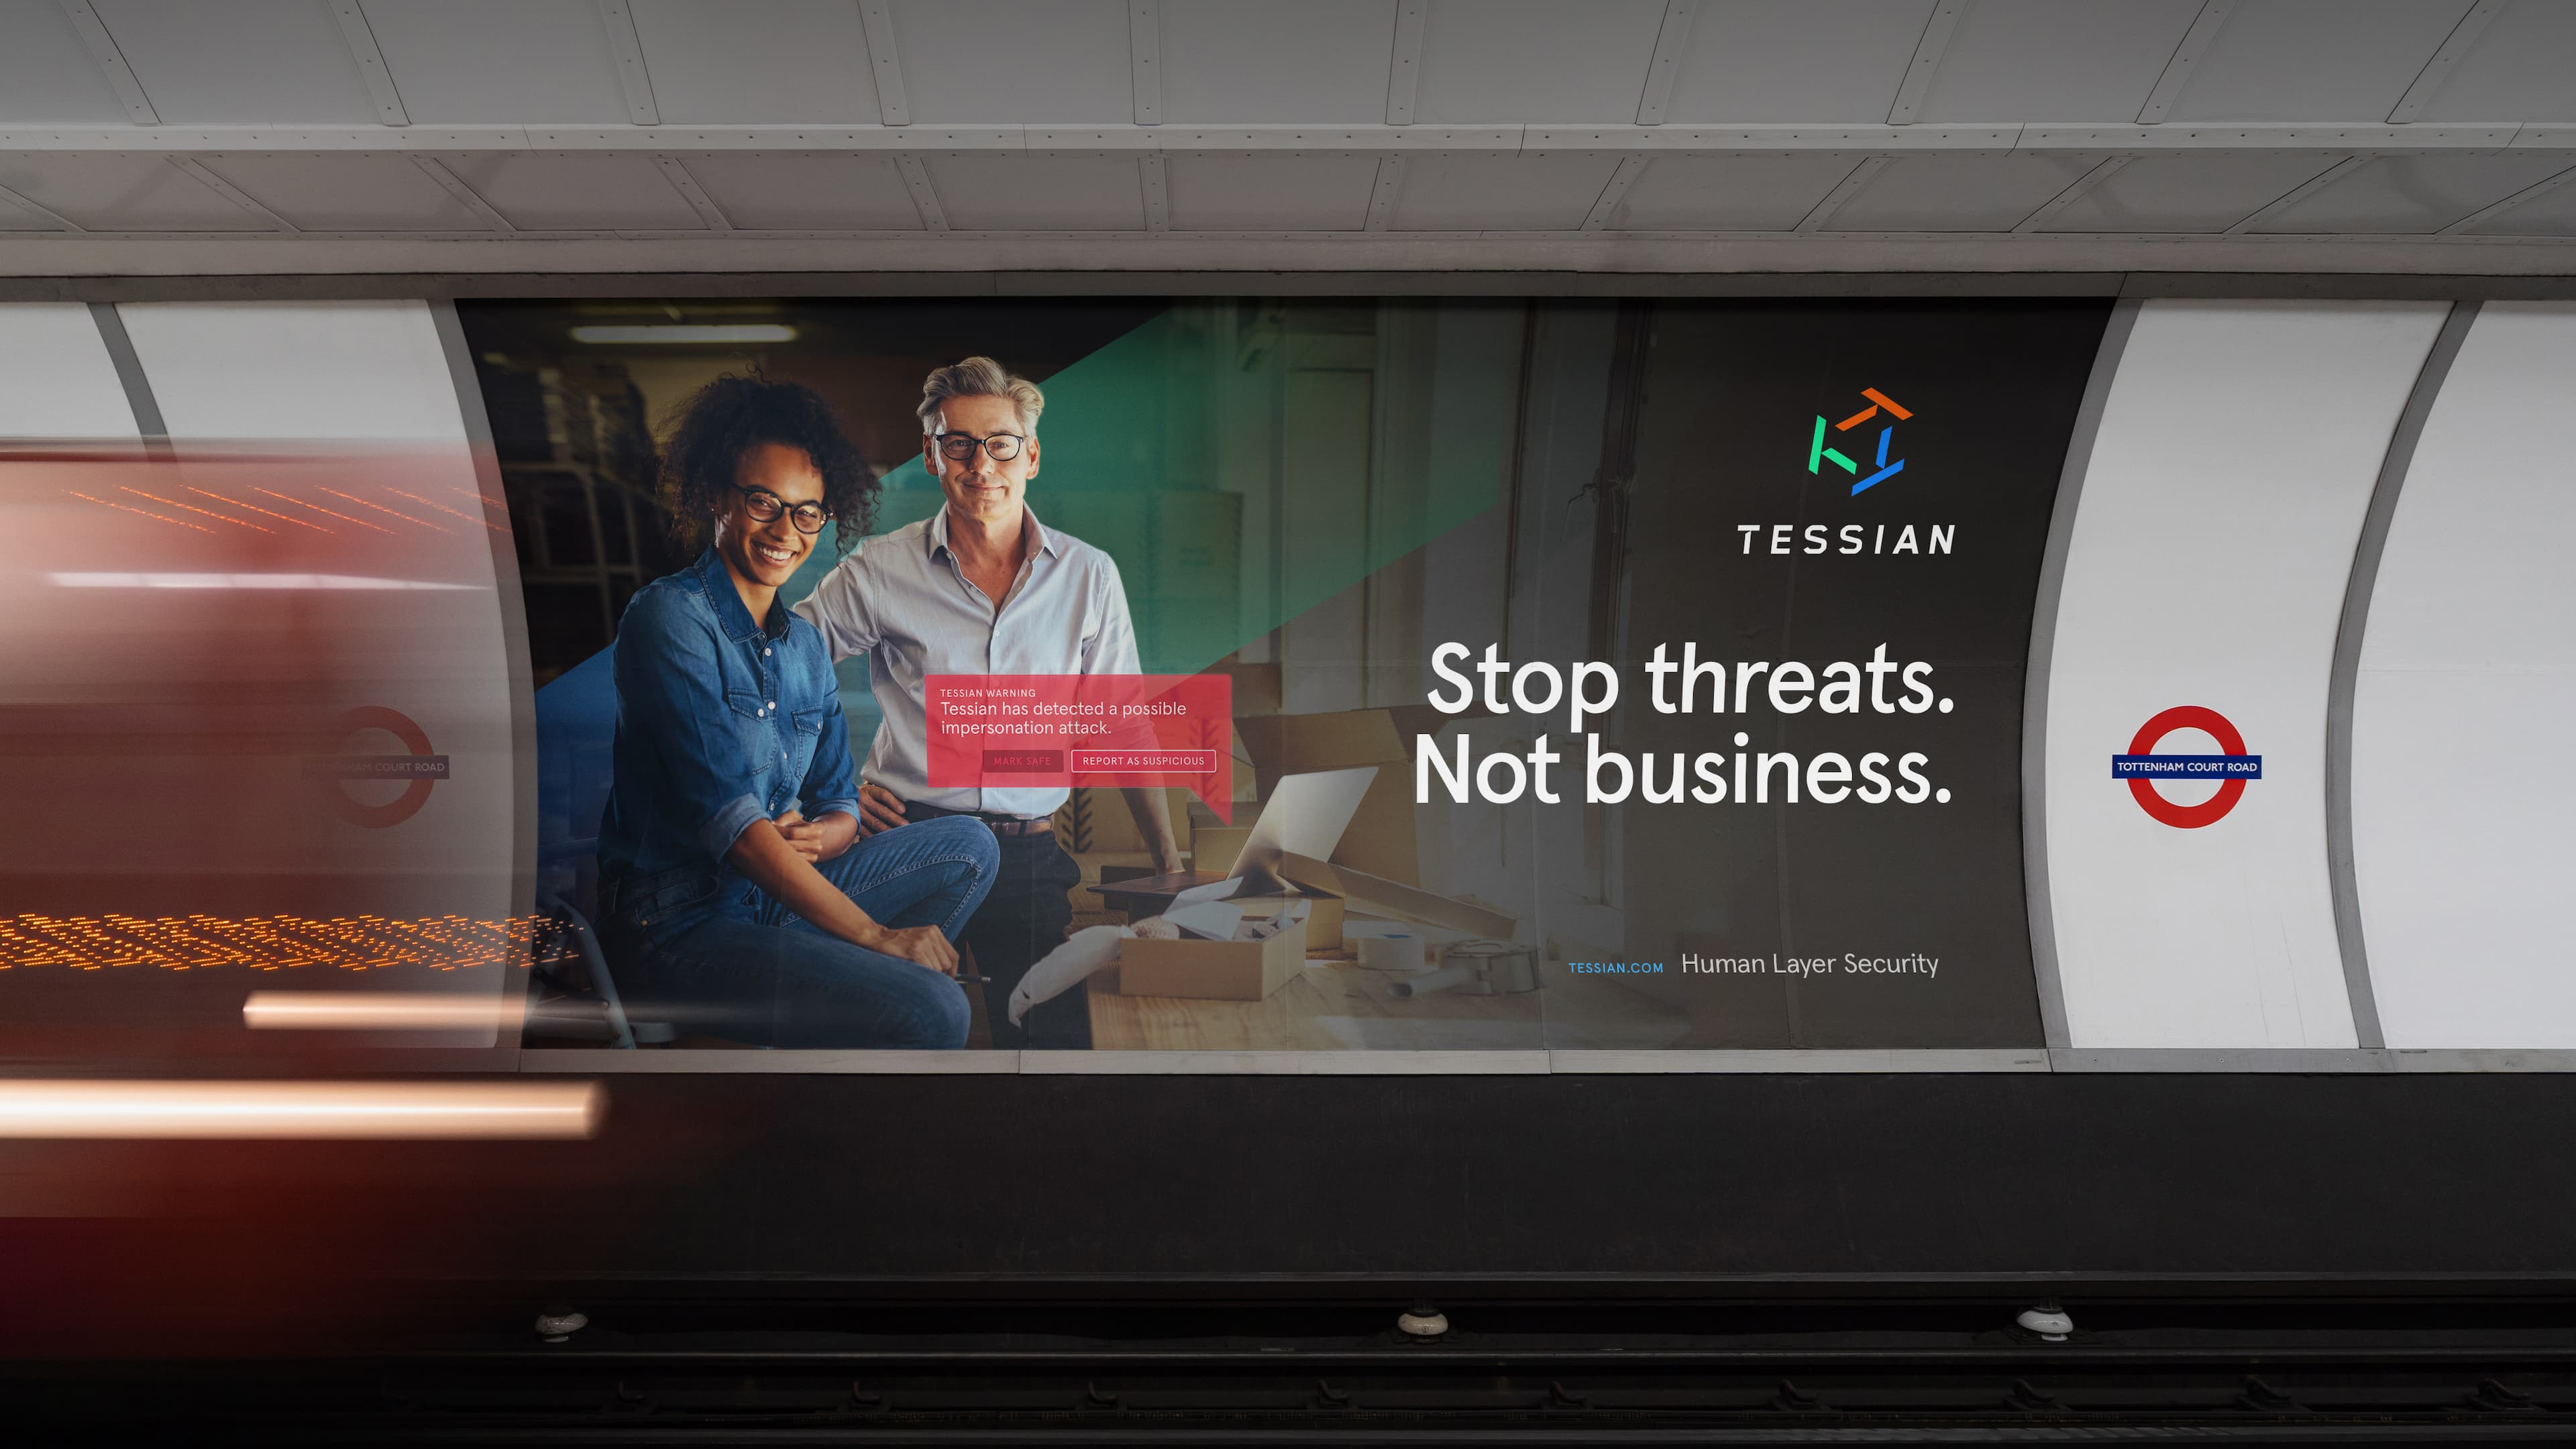 A digital-first brand identity for Sequoia-backed cybersecurity firm Tessian —the world's first Human Layer Security platform — as it proposes a new human-first approach to cybersecurity and scales for a global audience of enterprise customers.